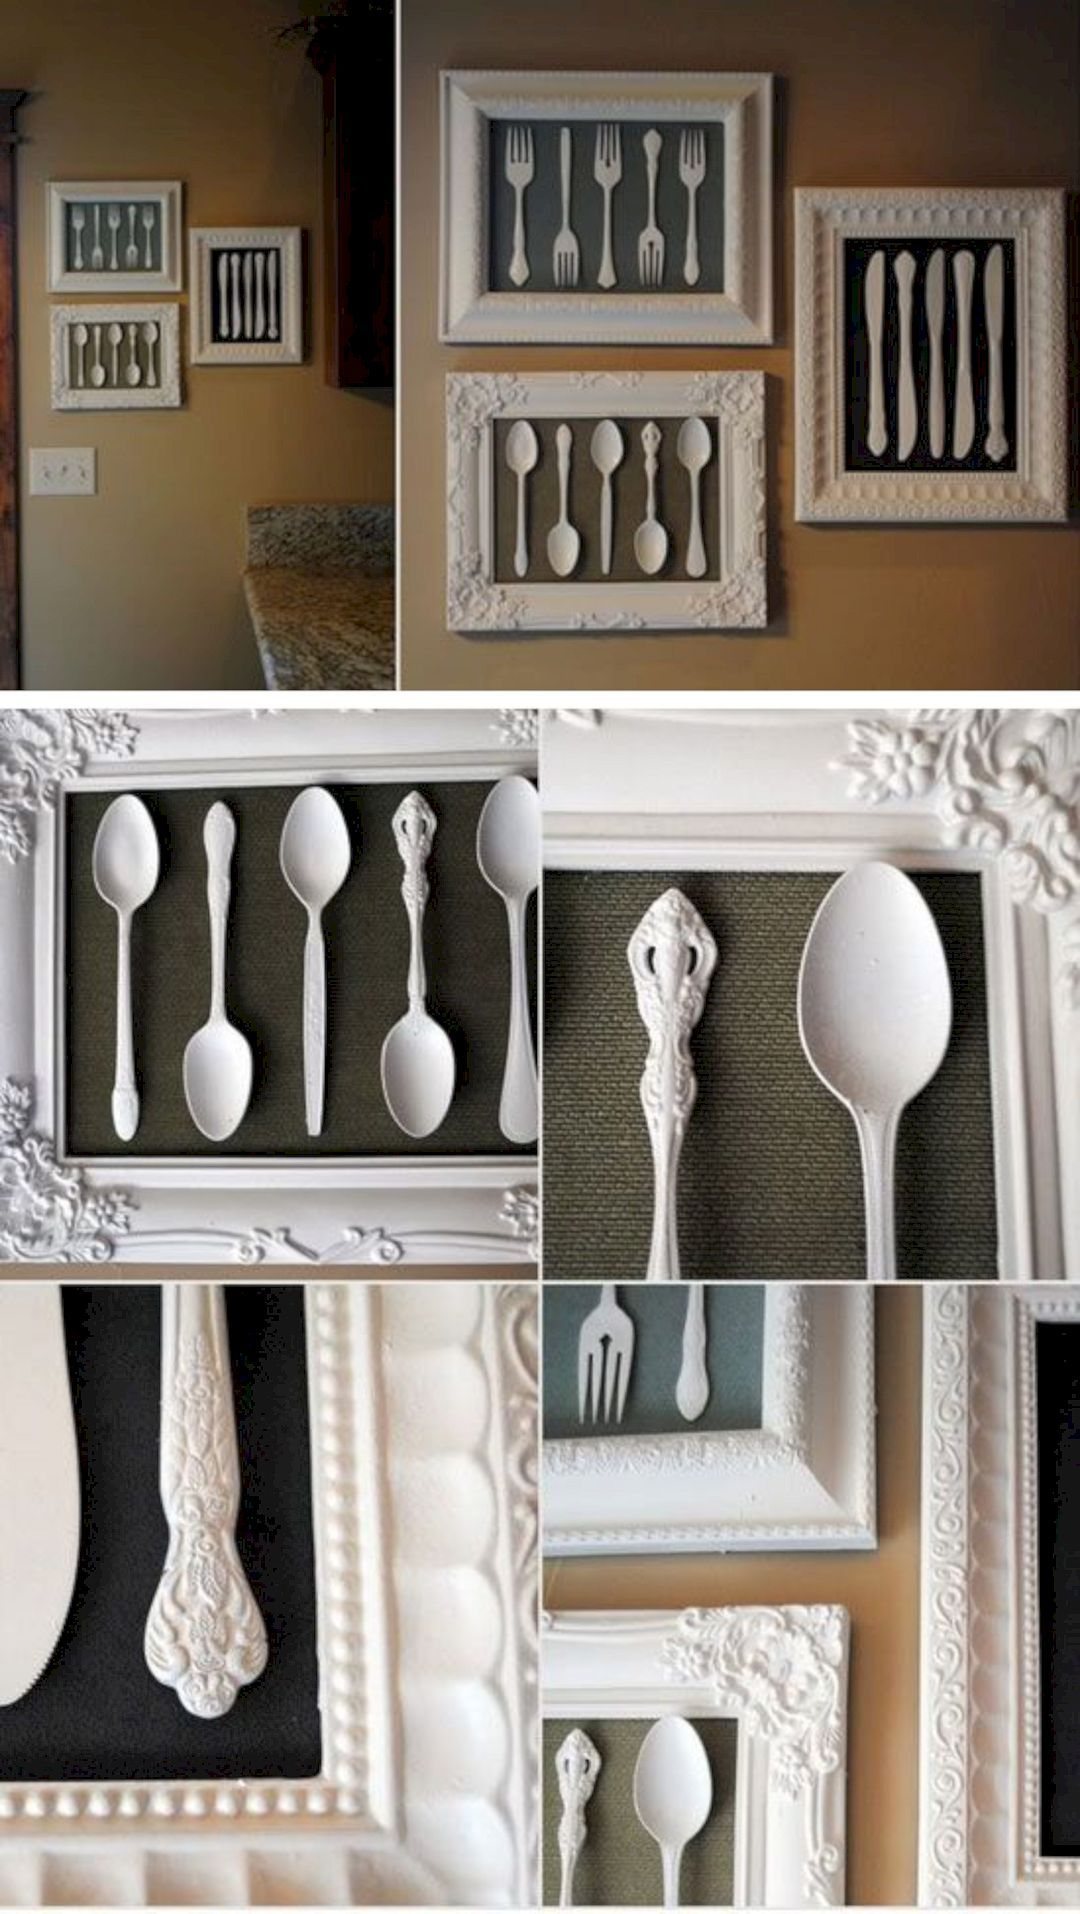 5 Top Small Kitchen Decorating Ideas Home Diy Decor On A Budget Easy